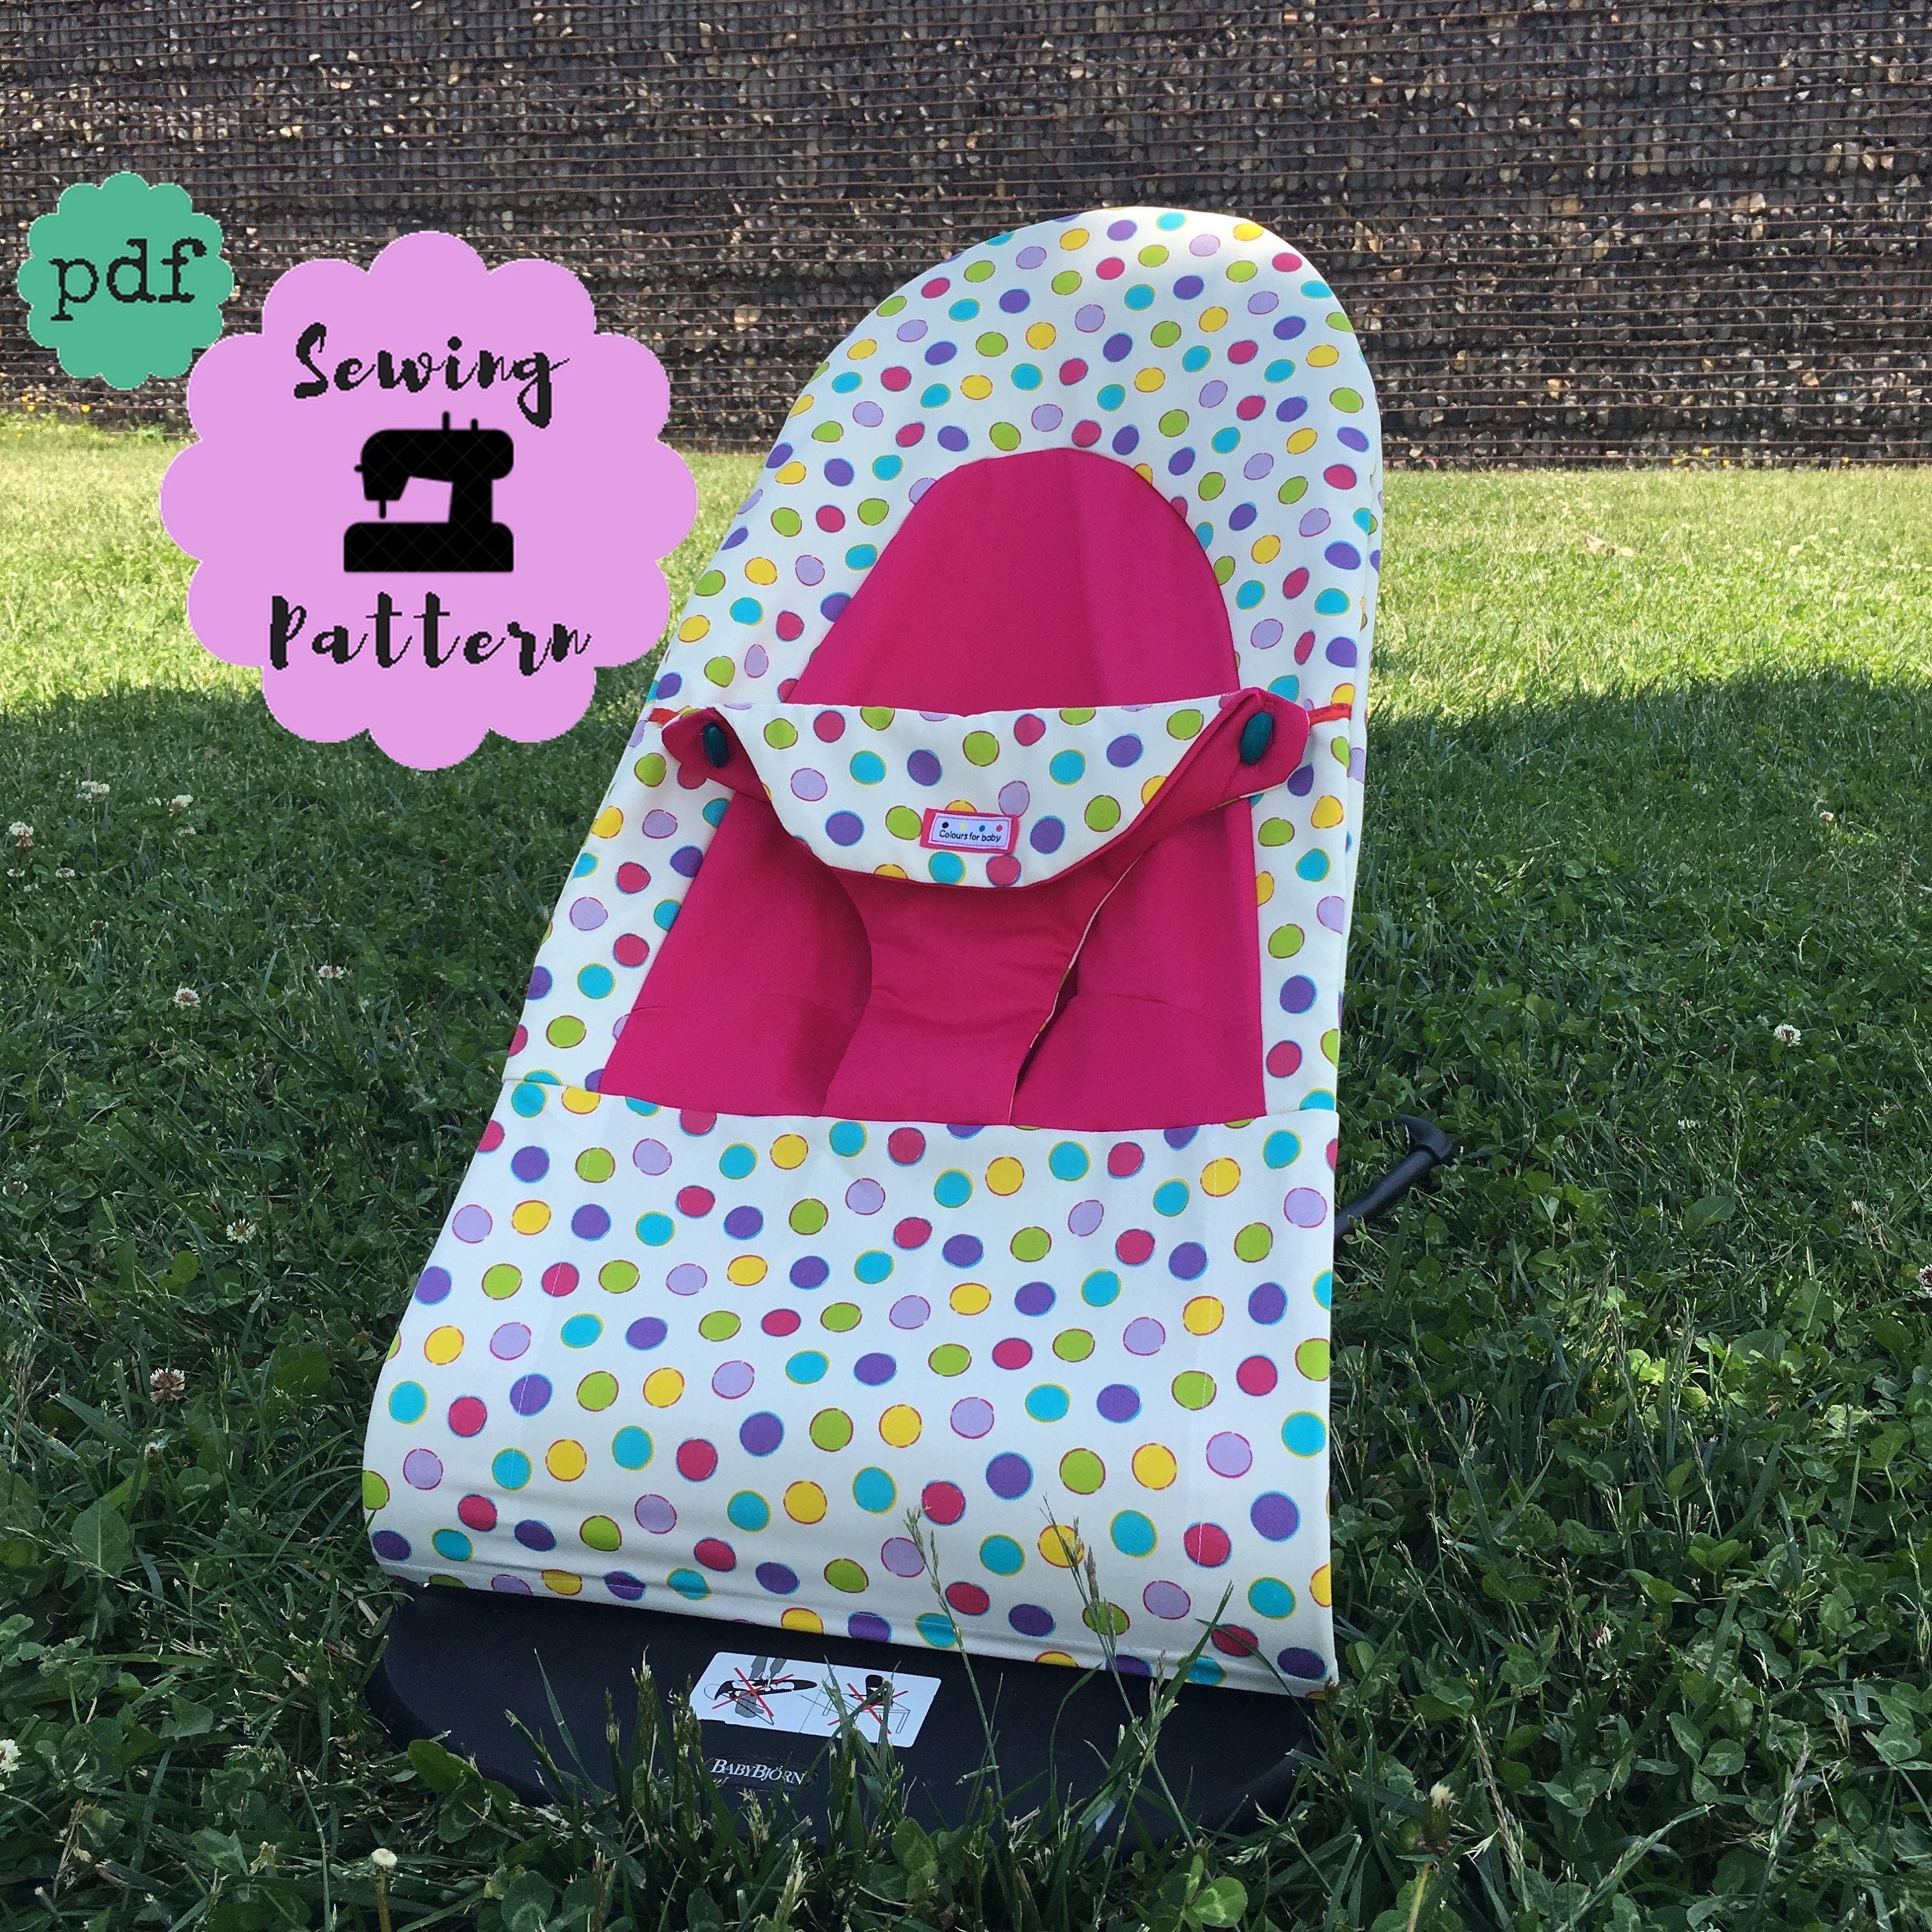 85bd8459e3a BABYBJÖRN Seat replacement Cover PDF Pattern for Balance